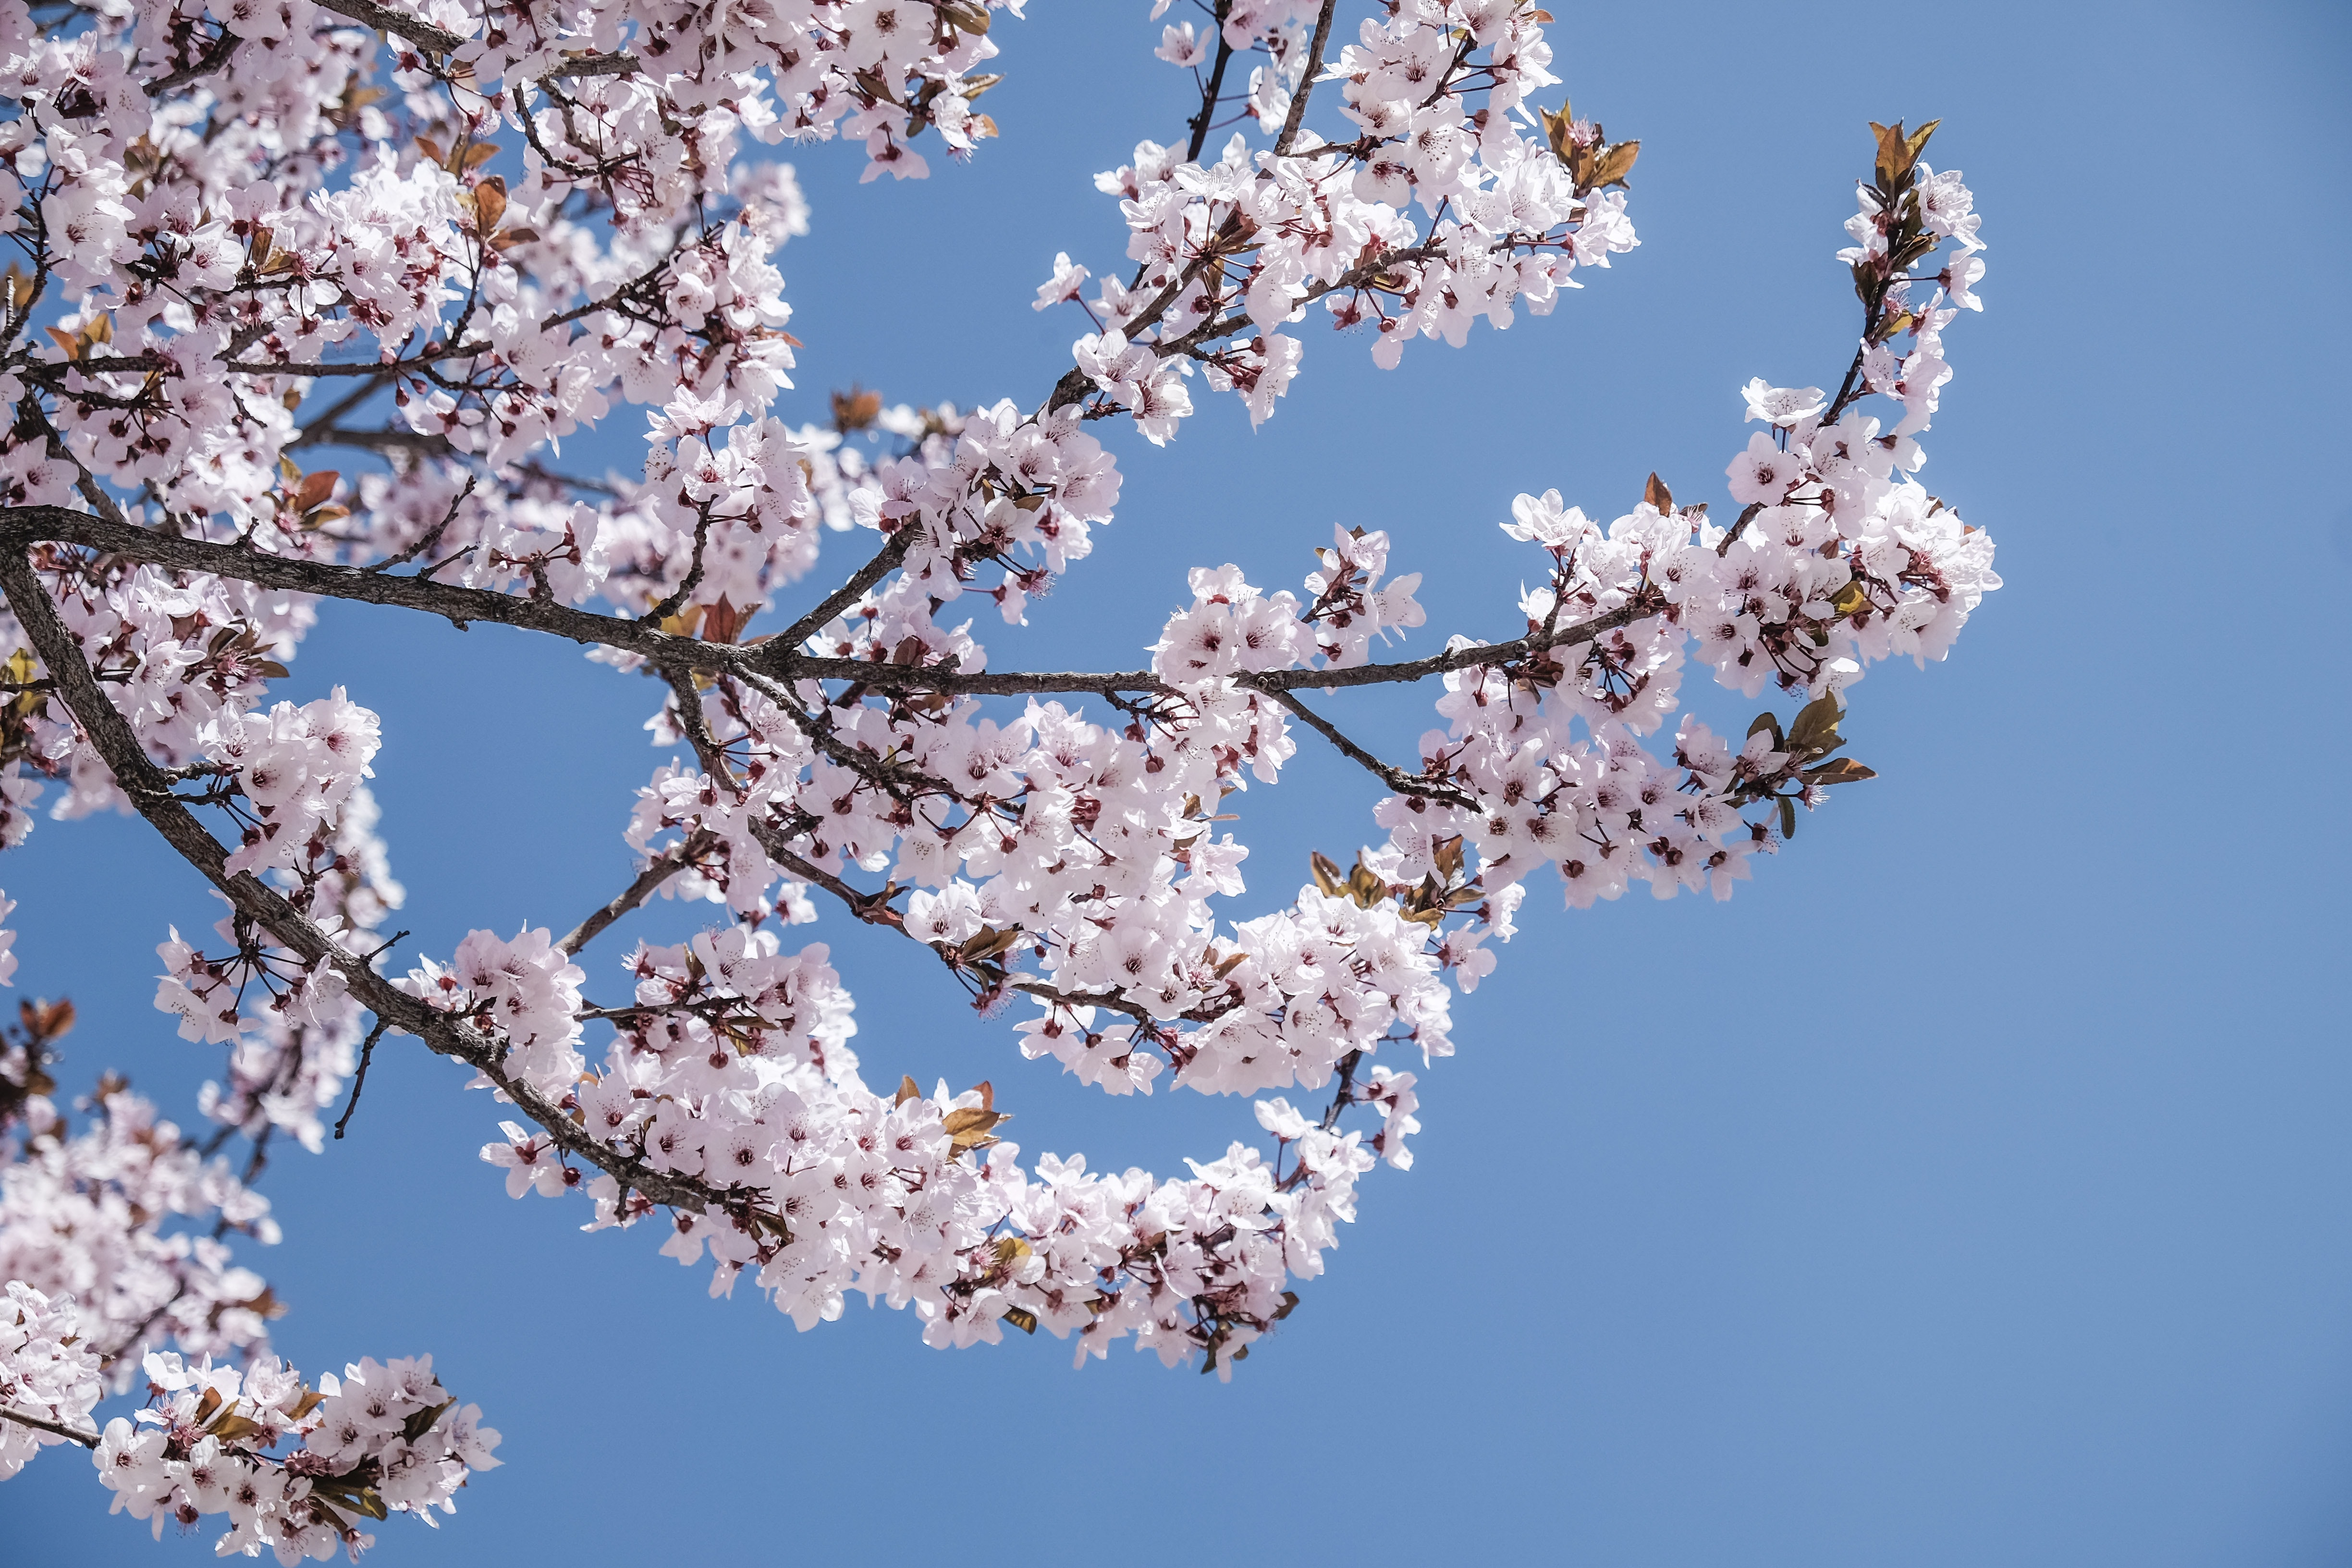 Cherry blossom tree branch with flowers in bloom in Lhasa